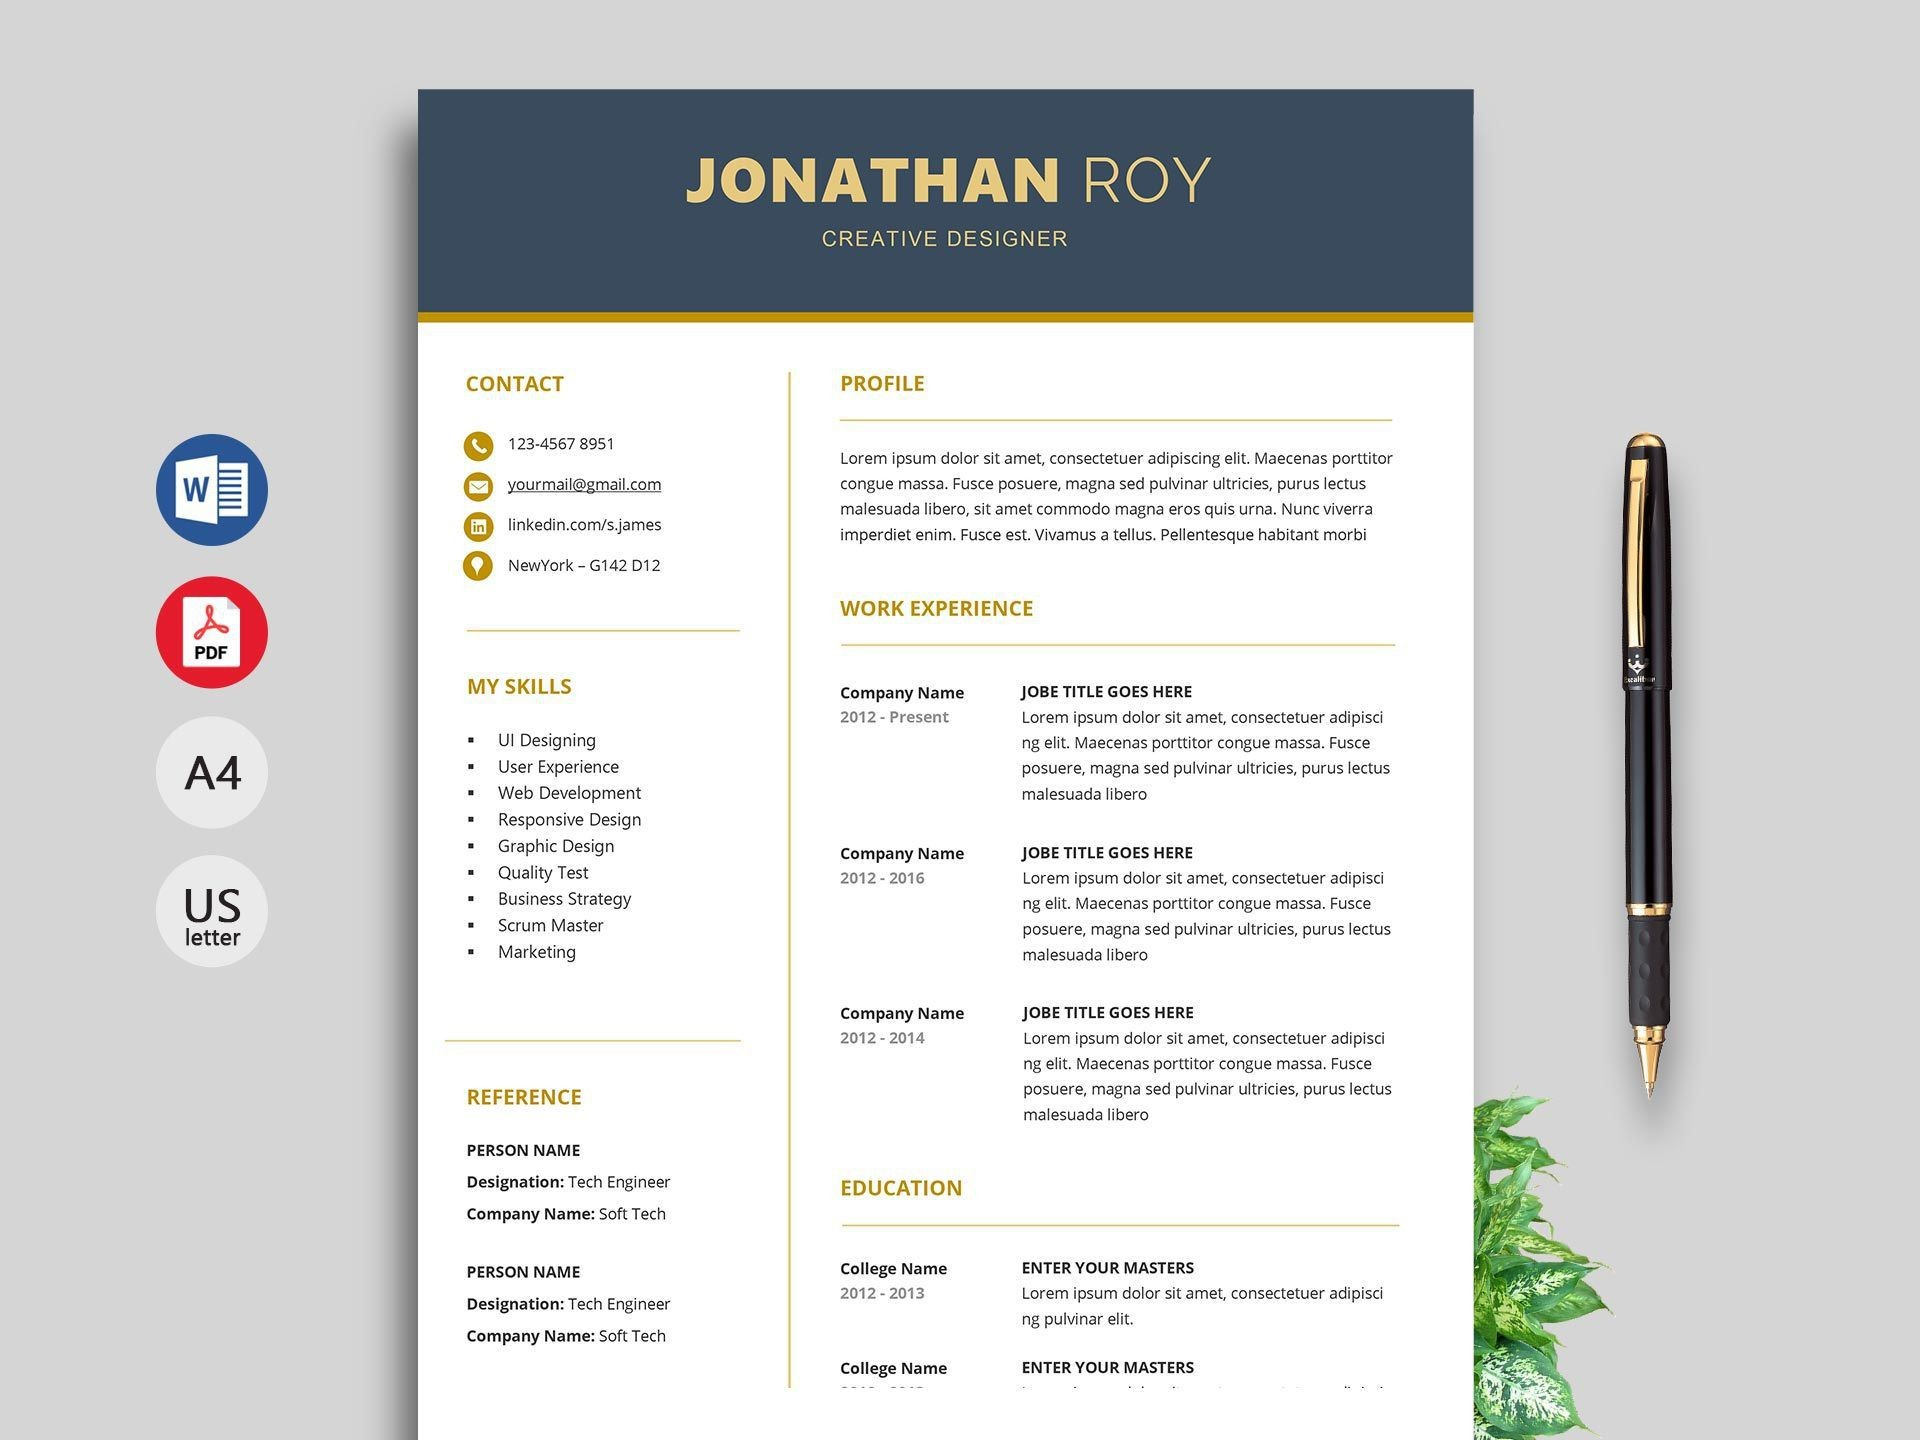 009 Unusual Download Resume Template Free Word Image  Attractive Microsoft Simple For Creative1920